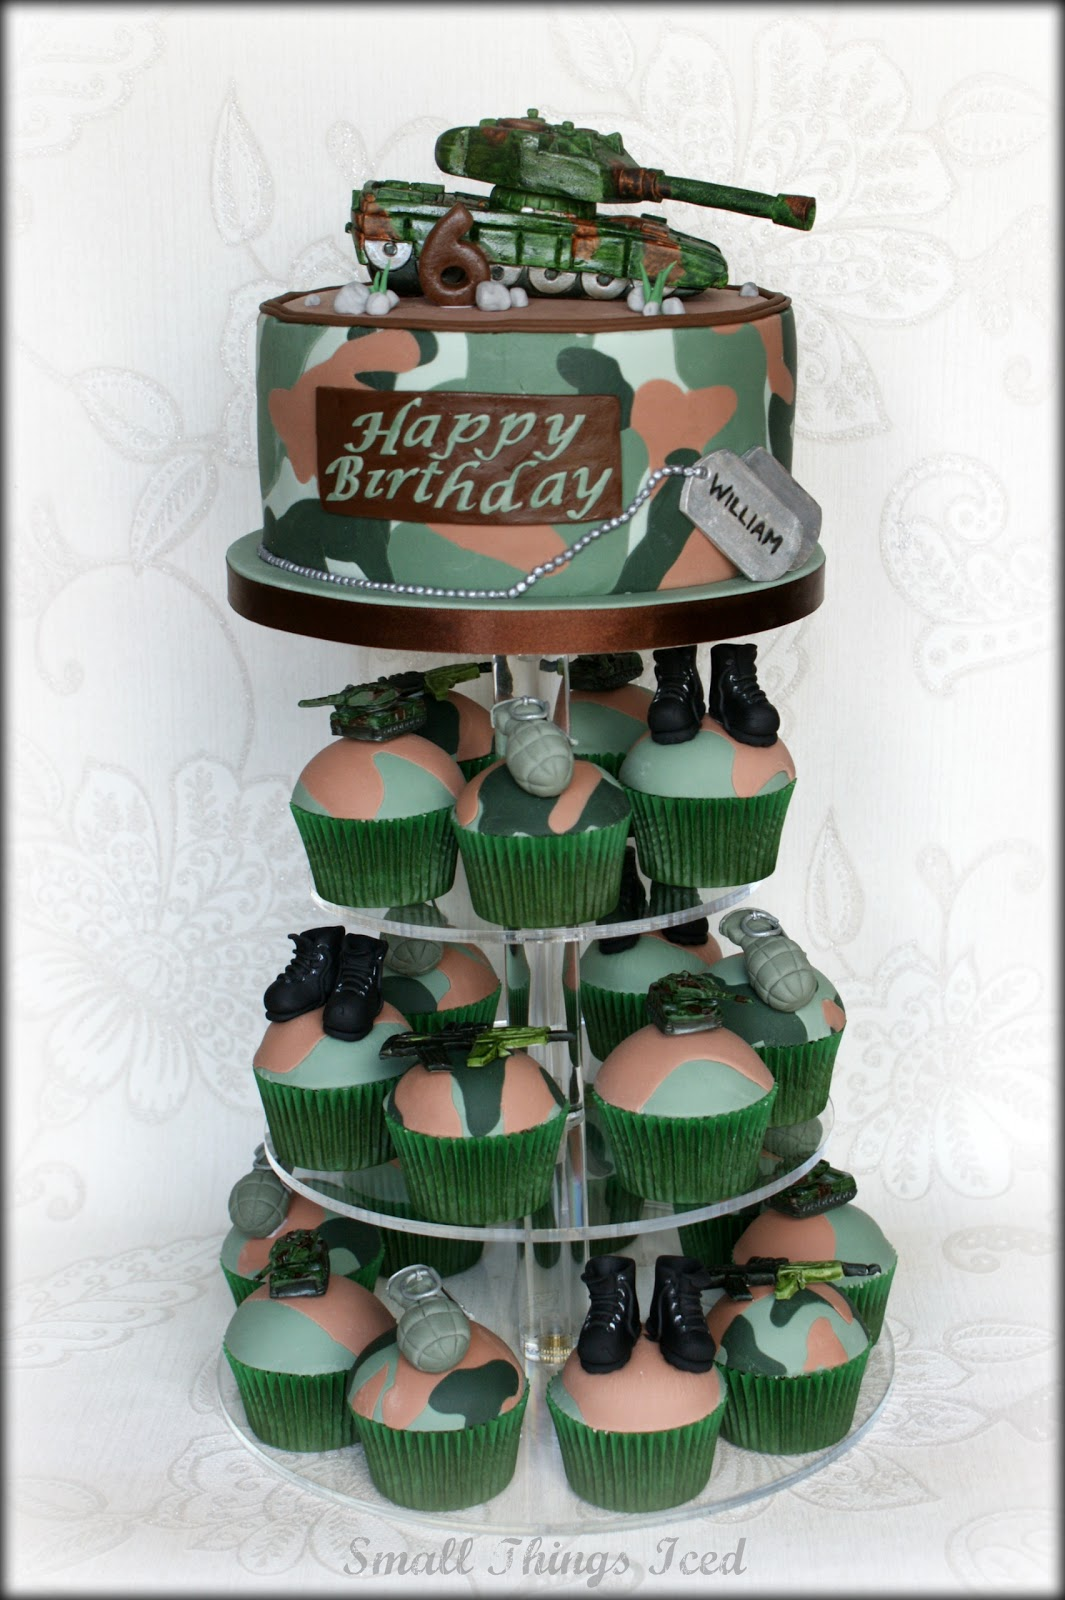 Birthday Cake Military Theme Image Inspiration of Cake and